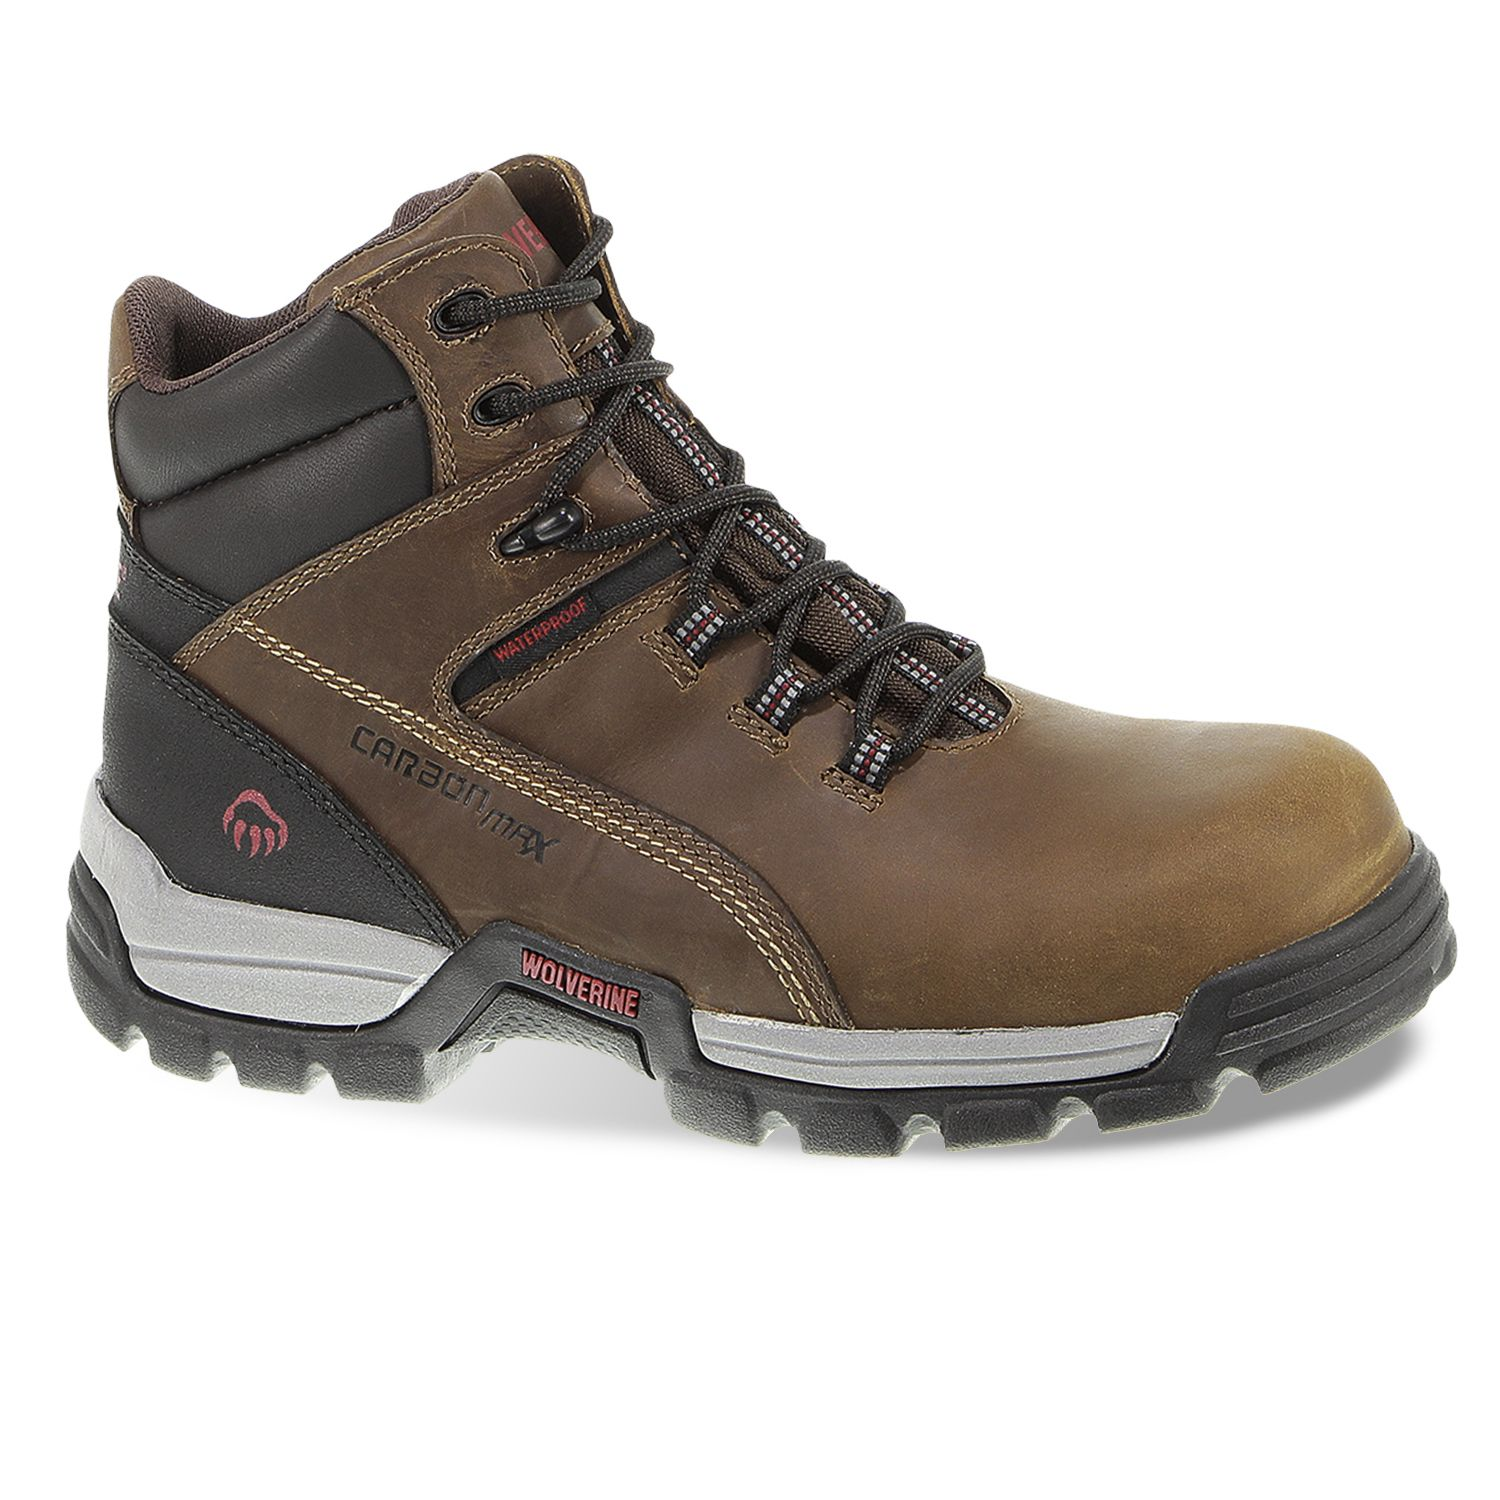 afffa3623fc Wolverine Tarmac Men's Waterproof 6-in. Composite-Toe Work Boots